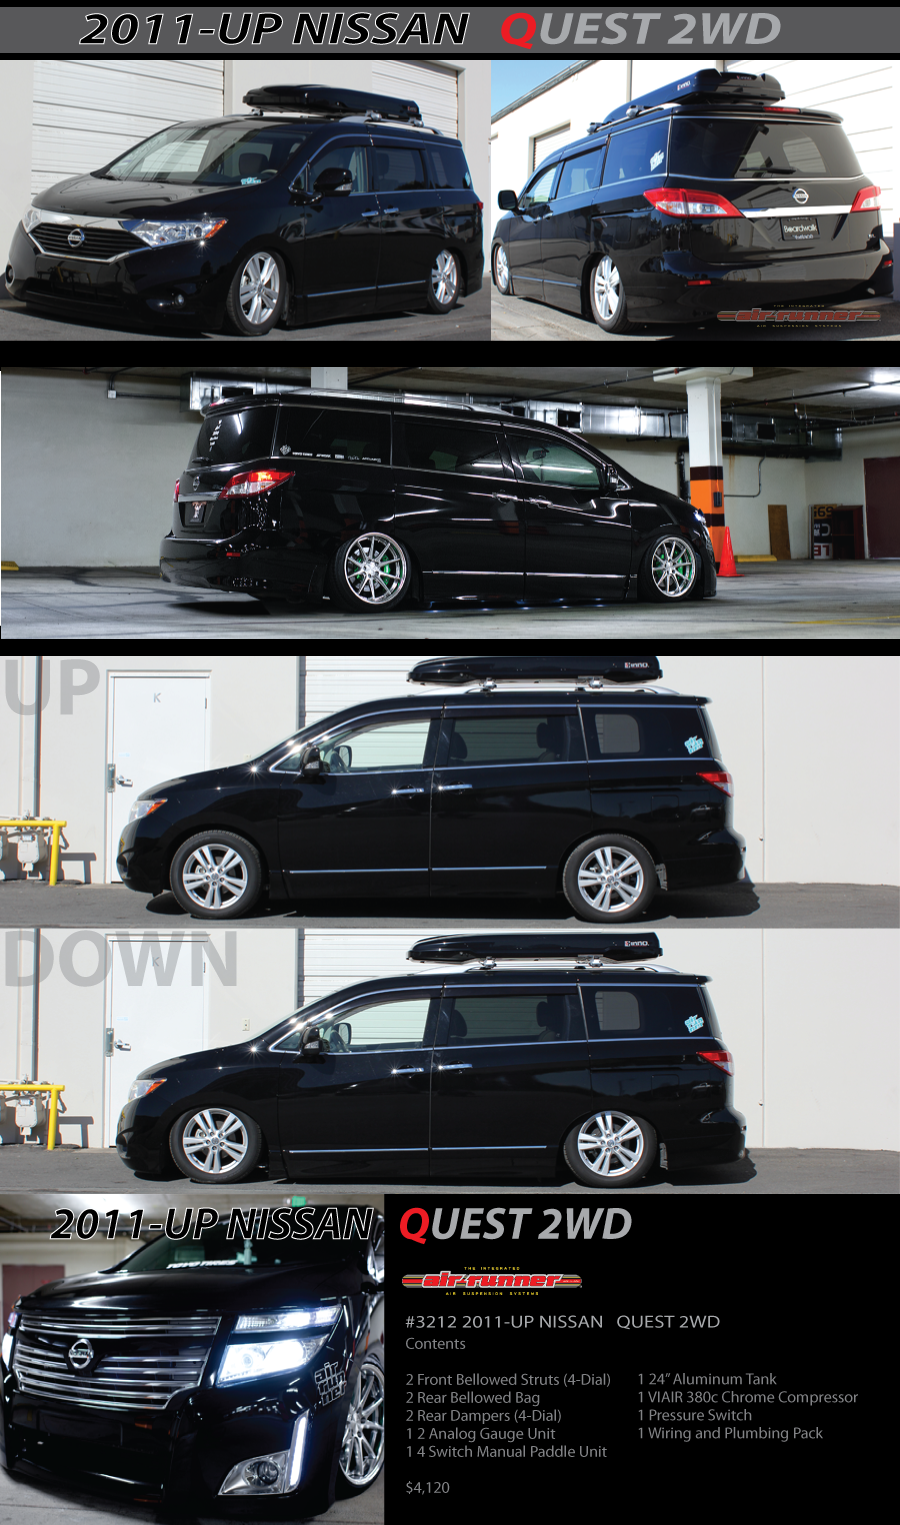 New Application #3212 NISSAN QUEST 2WD AirRunner System